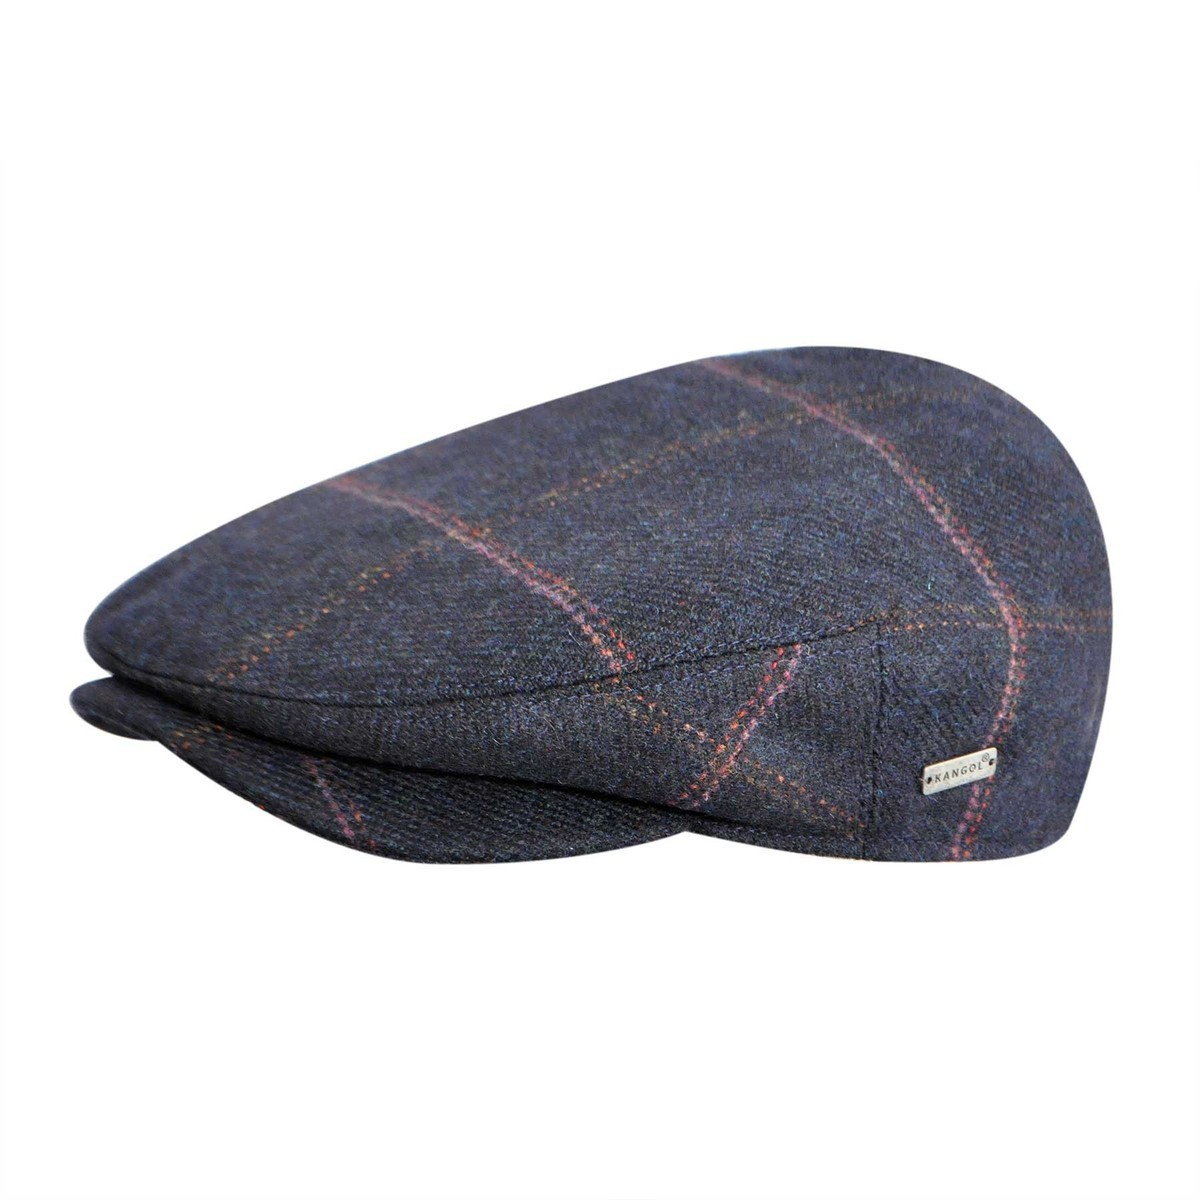 Kangol カンゴール British Peebles Norton Check Ivy Caps & Flat Caps 帽子 Norton Check